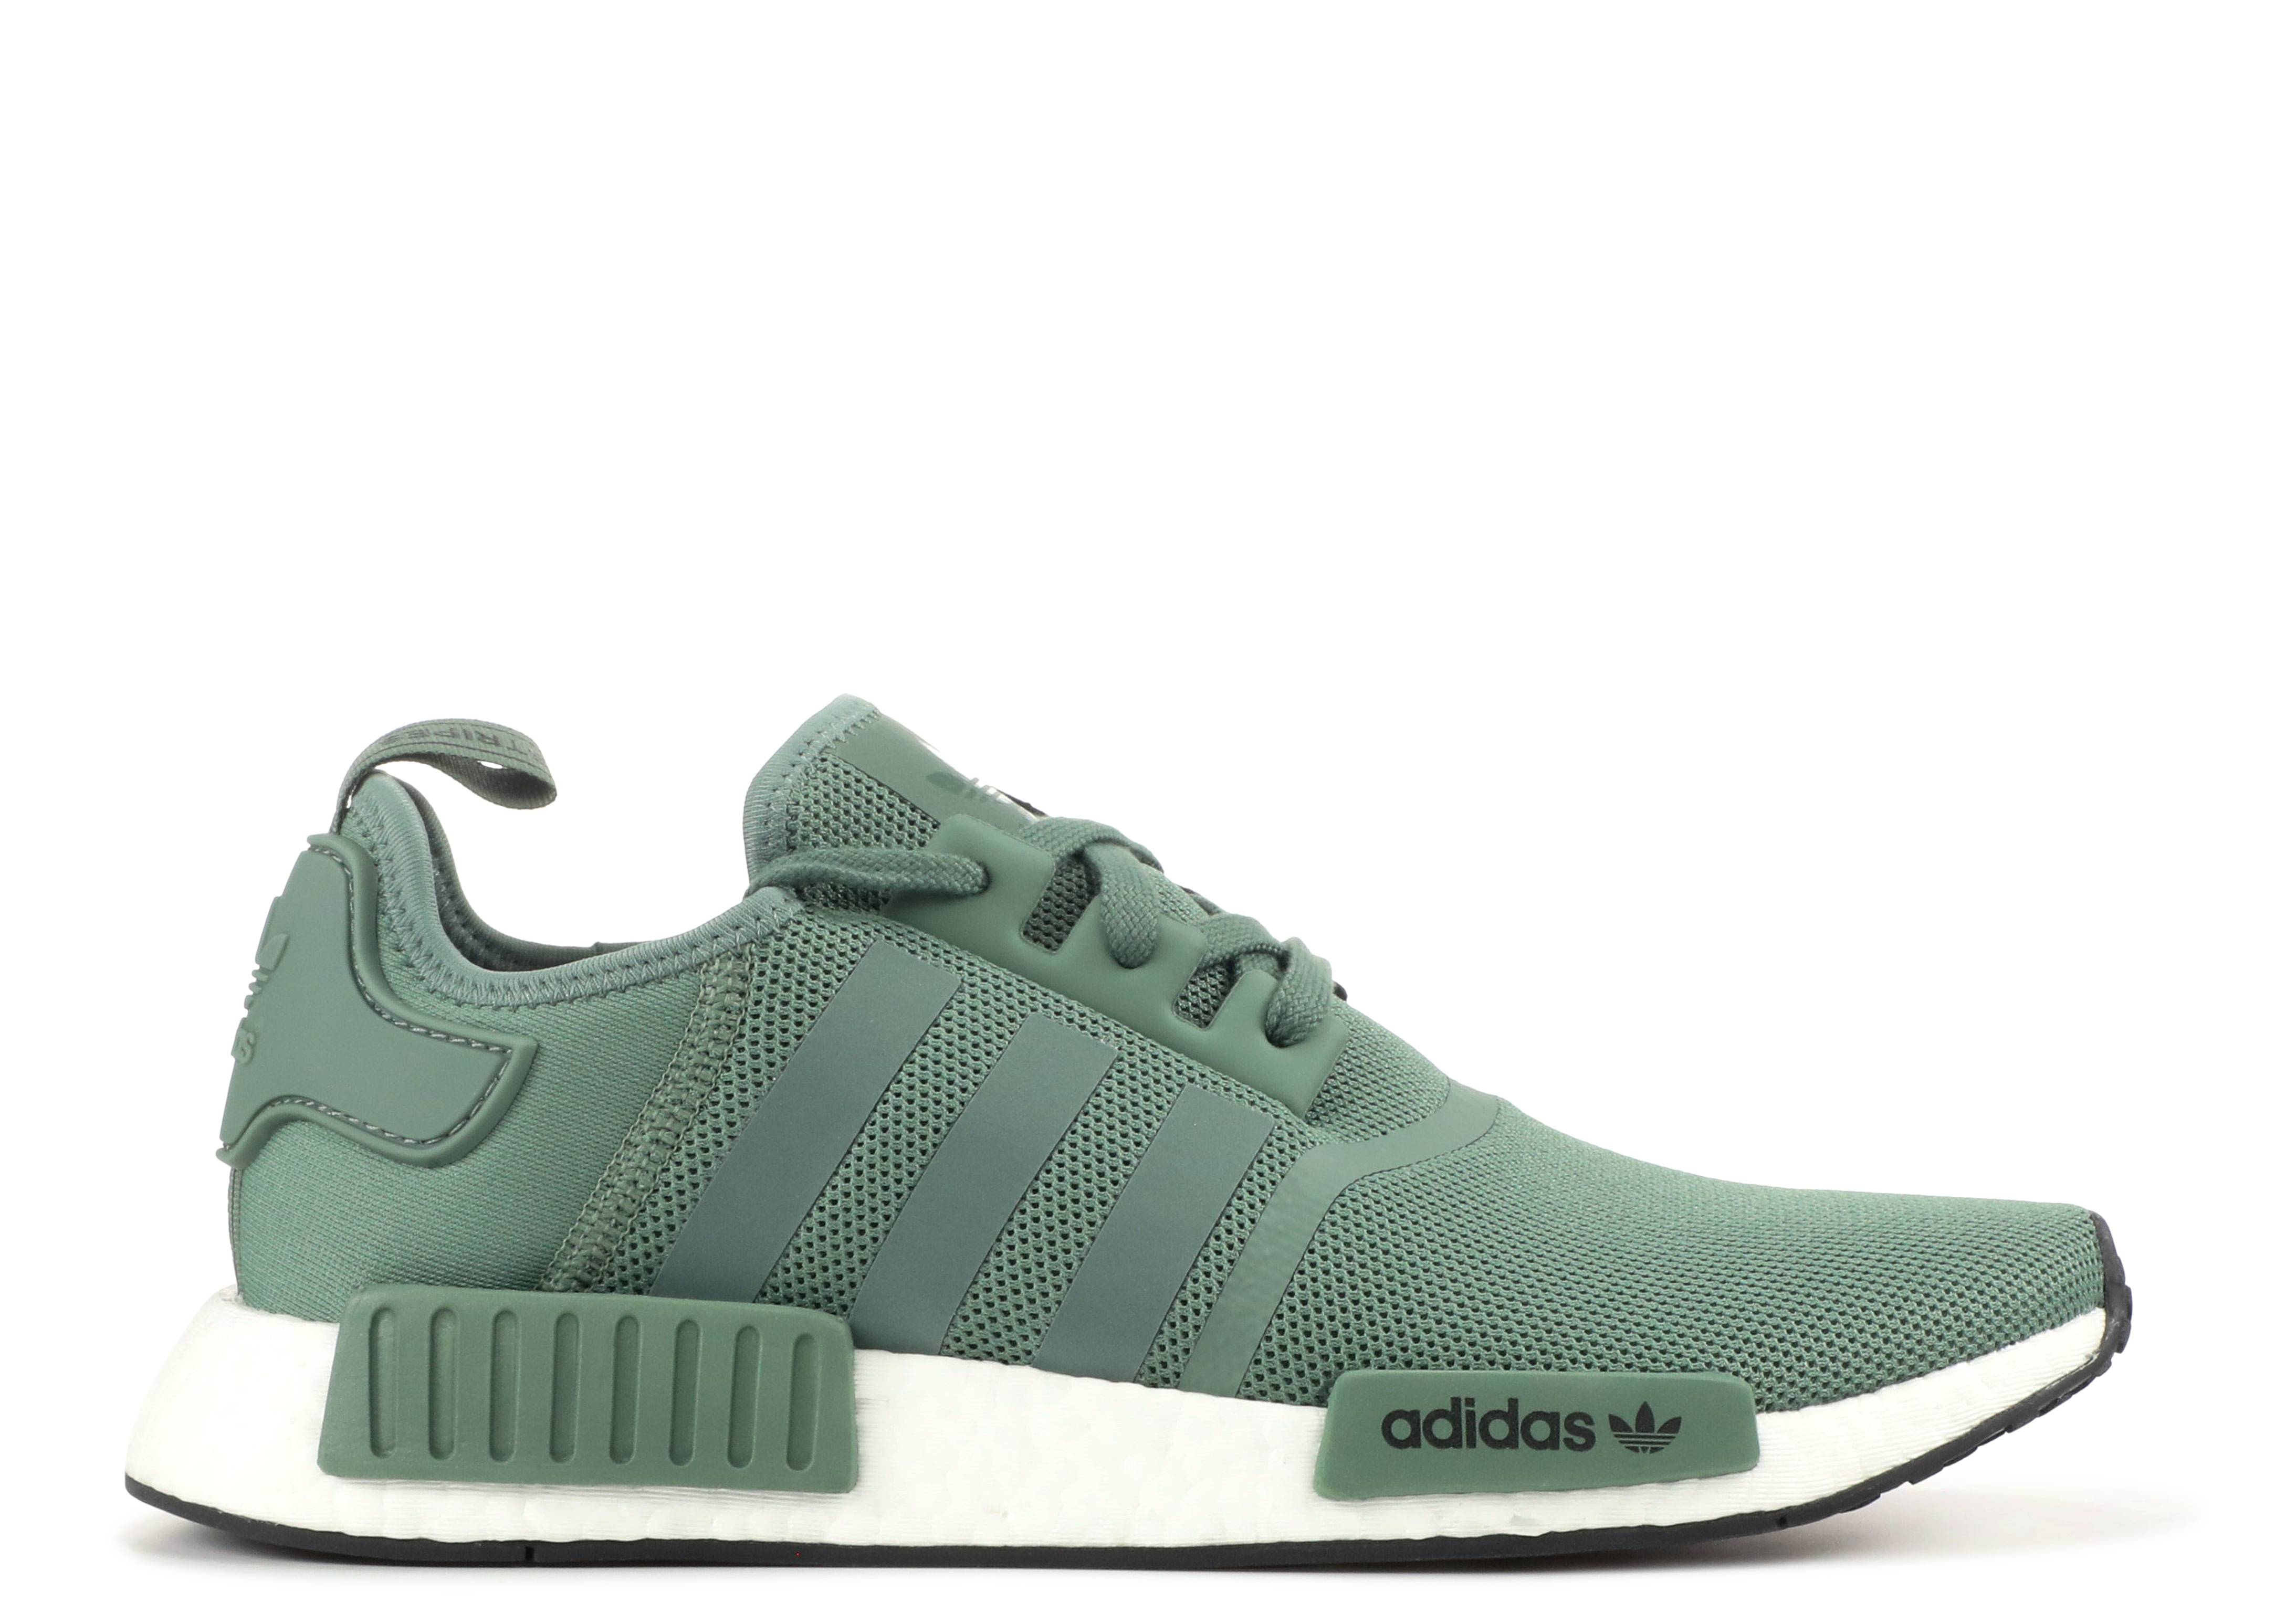 8d2f4efee Nmd R1 - Adidas - by9692 - teal teal white